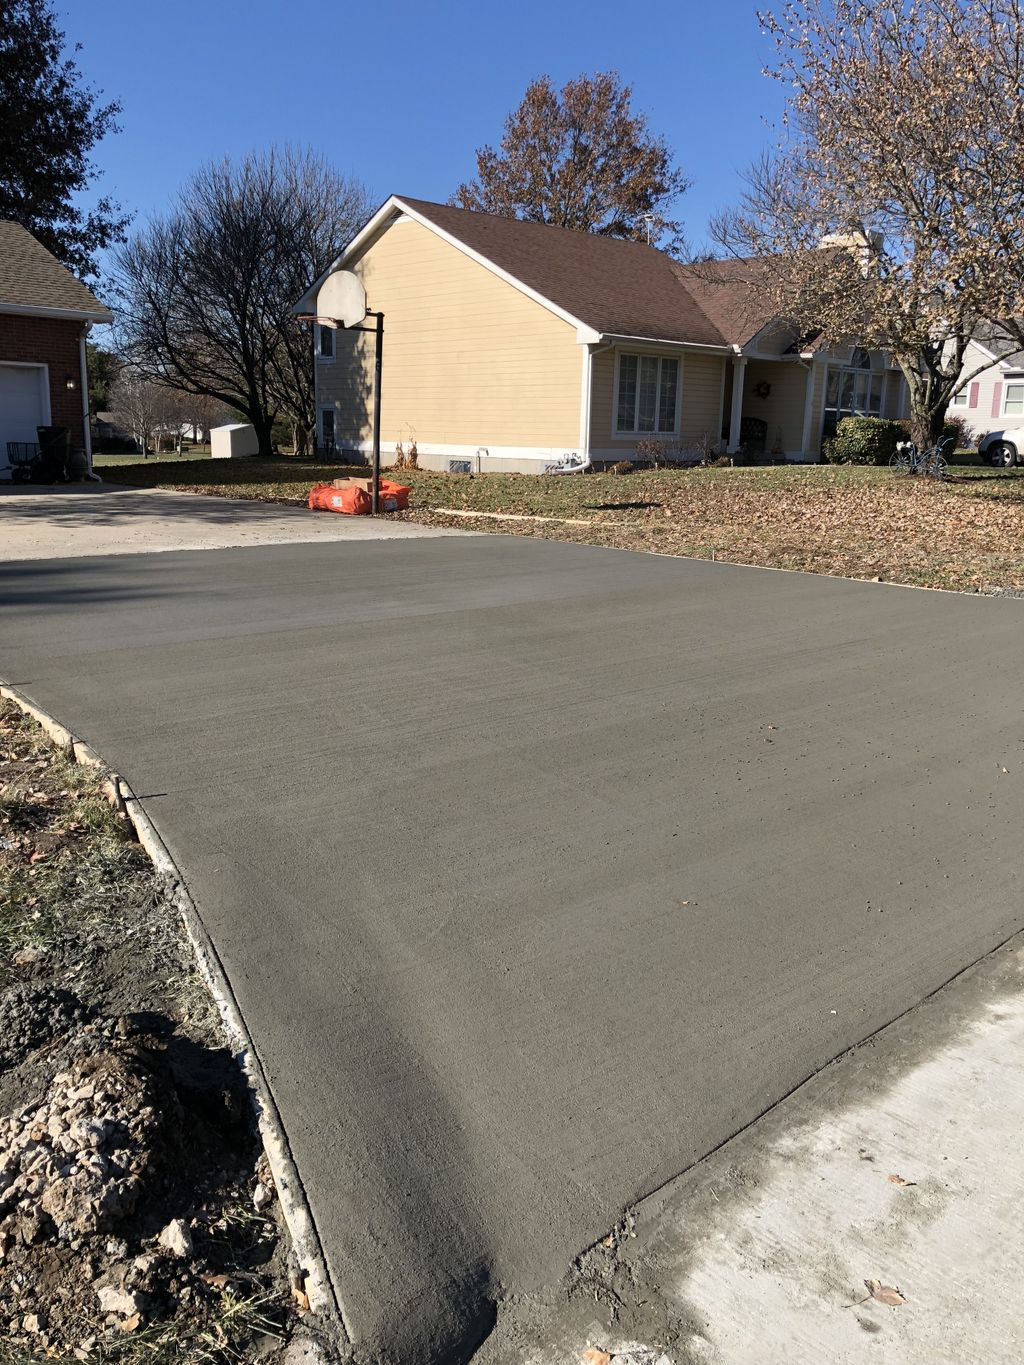 Replaced drive way approach